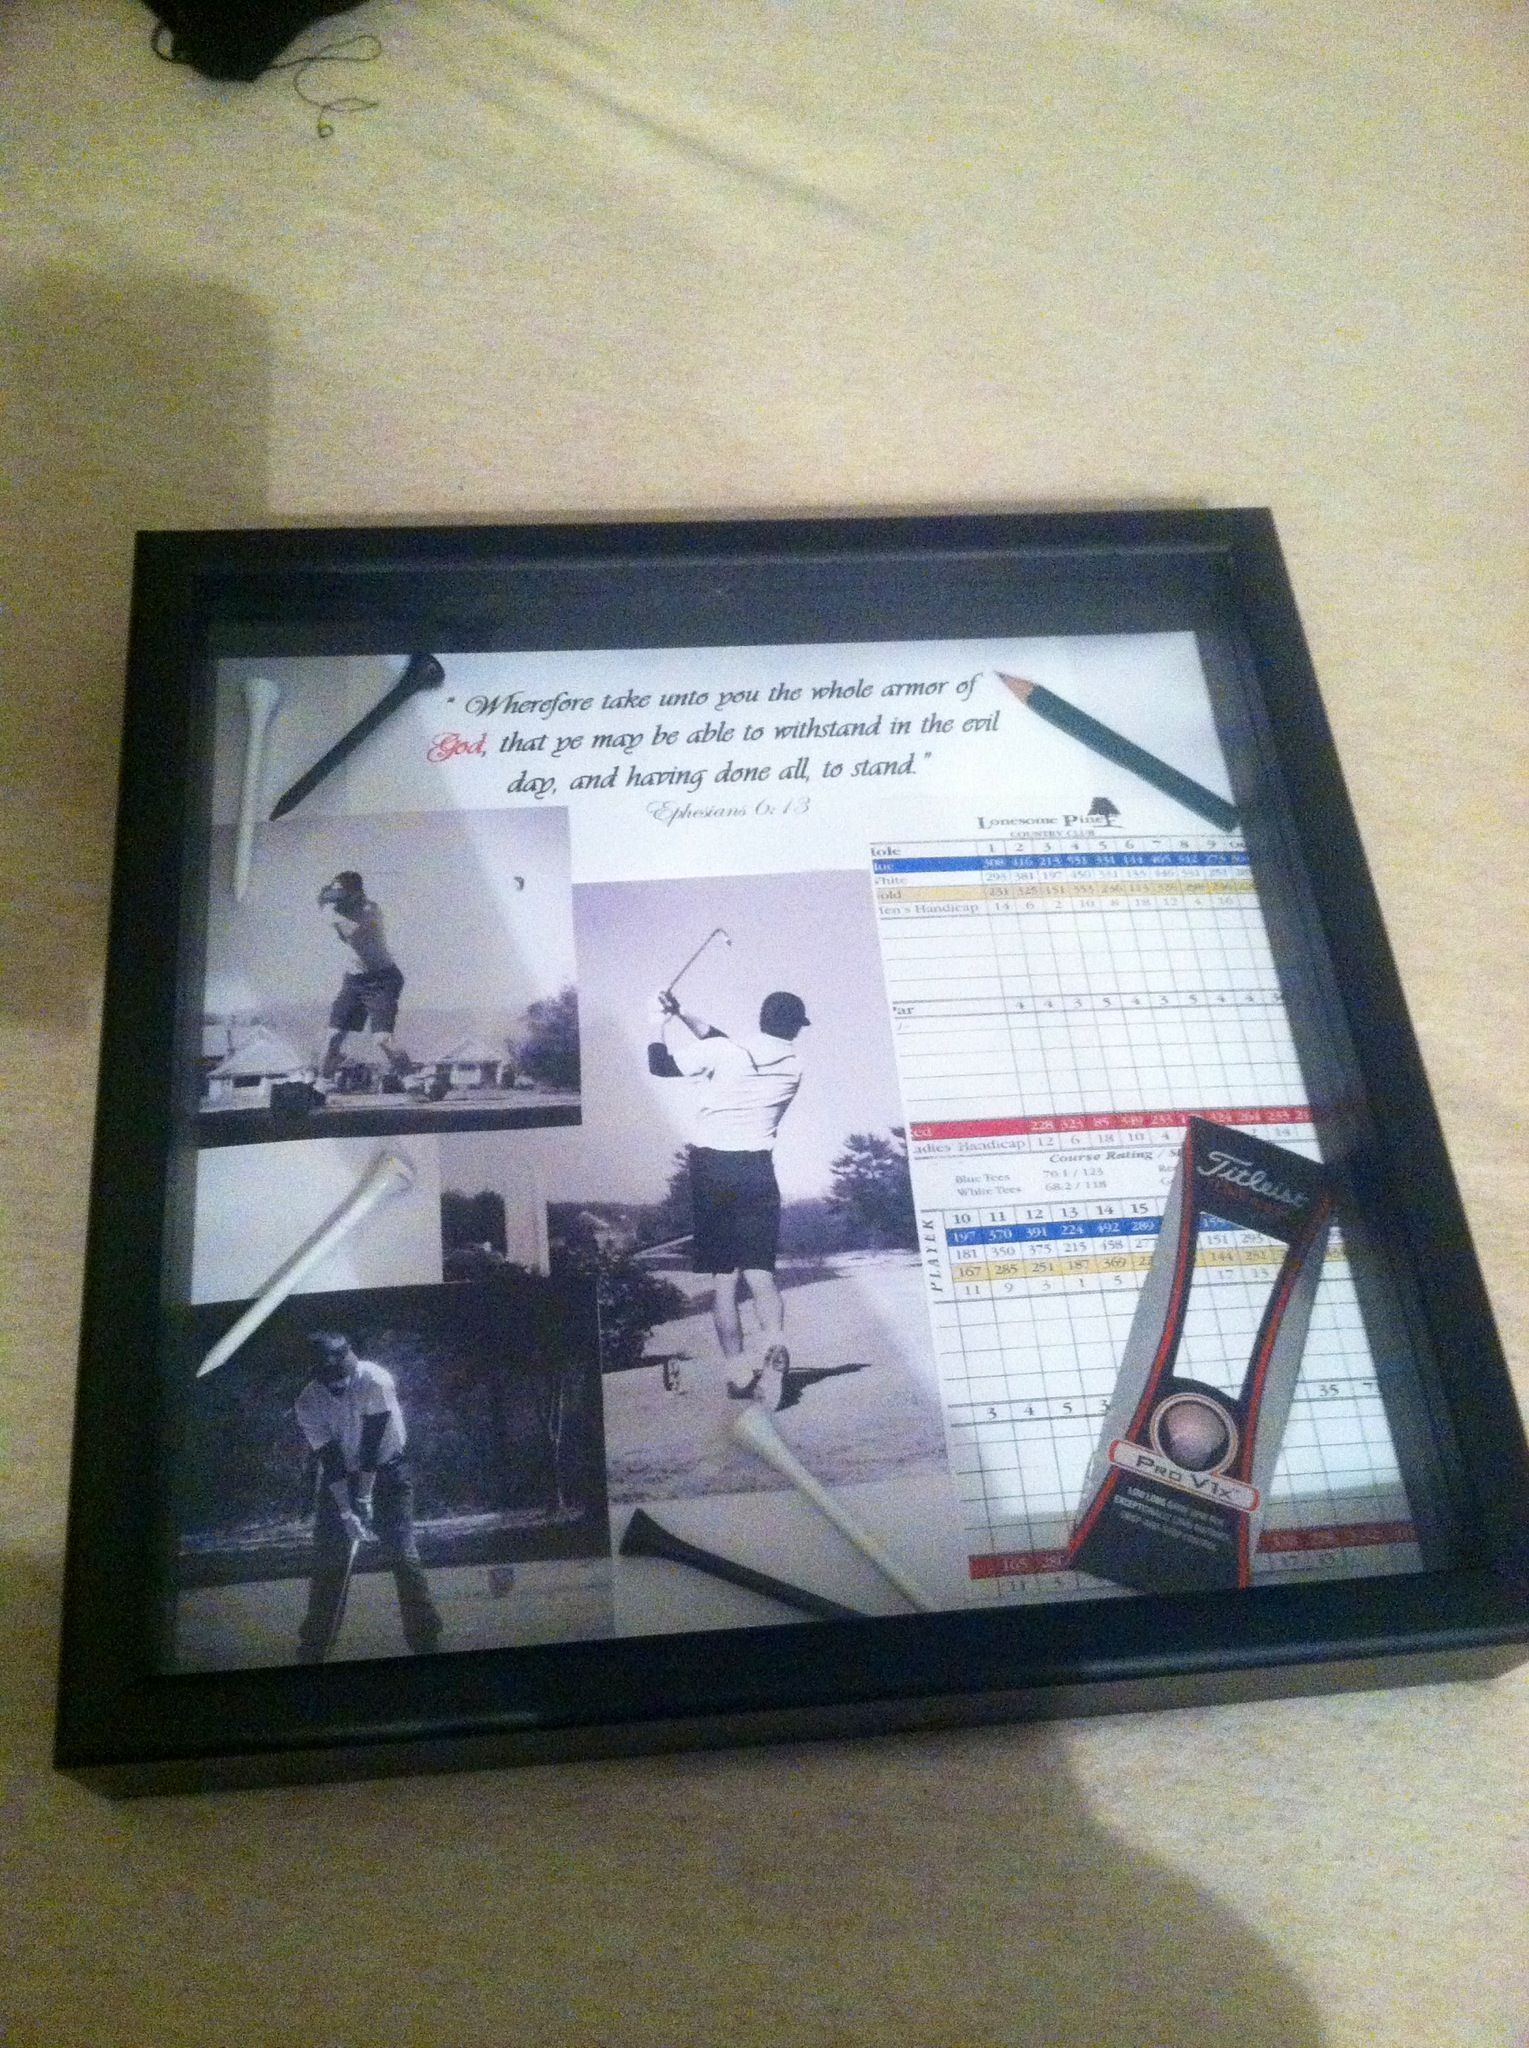 Golf shadow box frame for my boyfriend :) #sweetestdaygiftsforboyfriend Golf shadow box frame for my boyfriend :) #sweetestdaygiftsforboyfriend